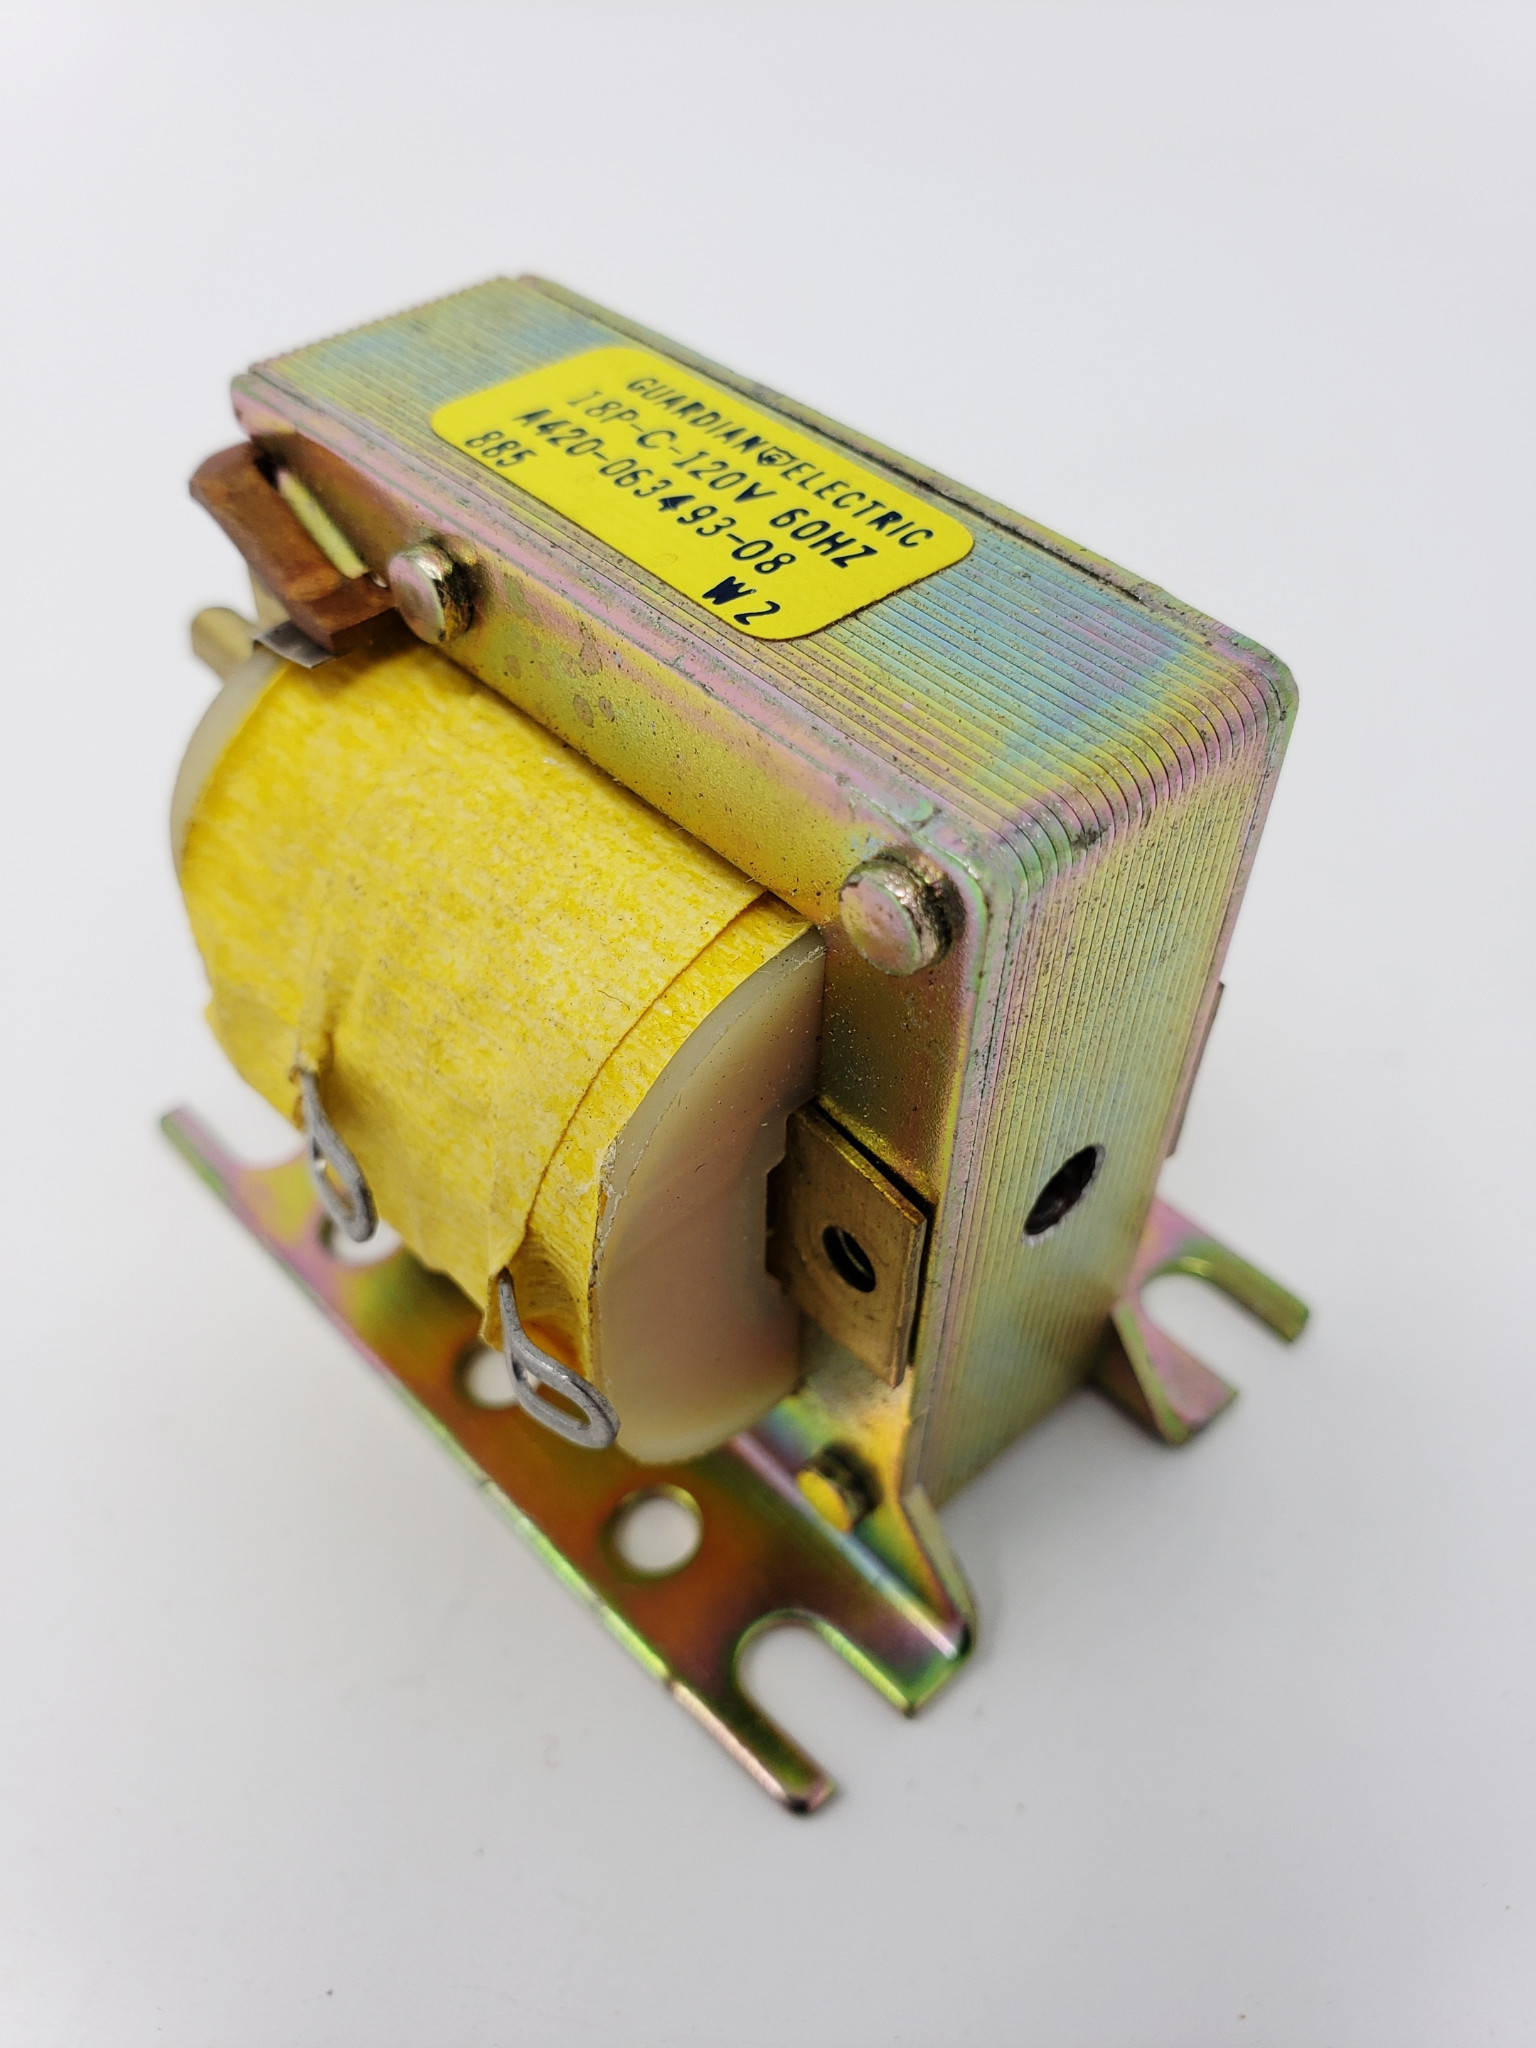 Details about  /Guardian Electric A420-063493-08 Solenoid